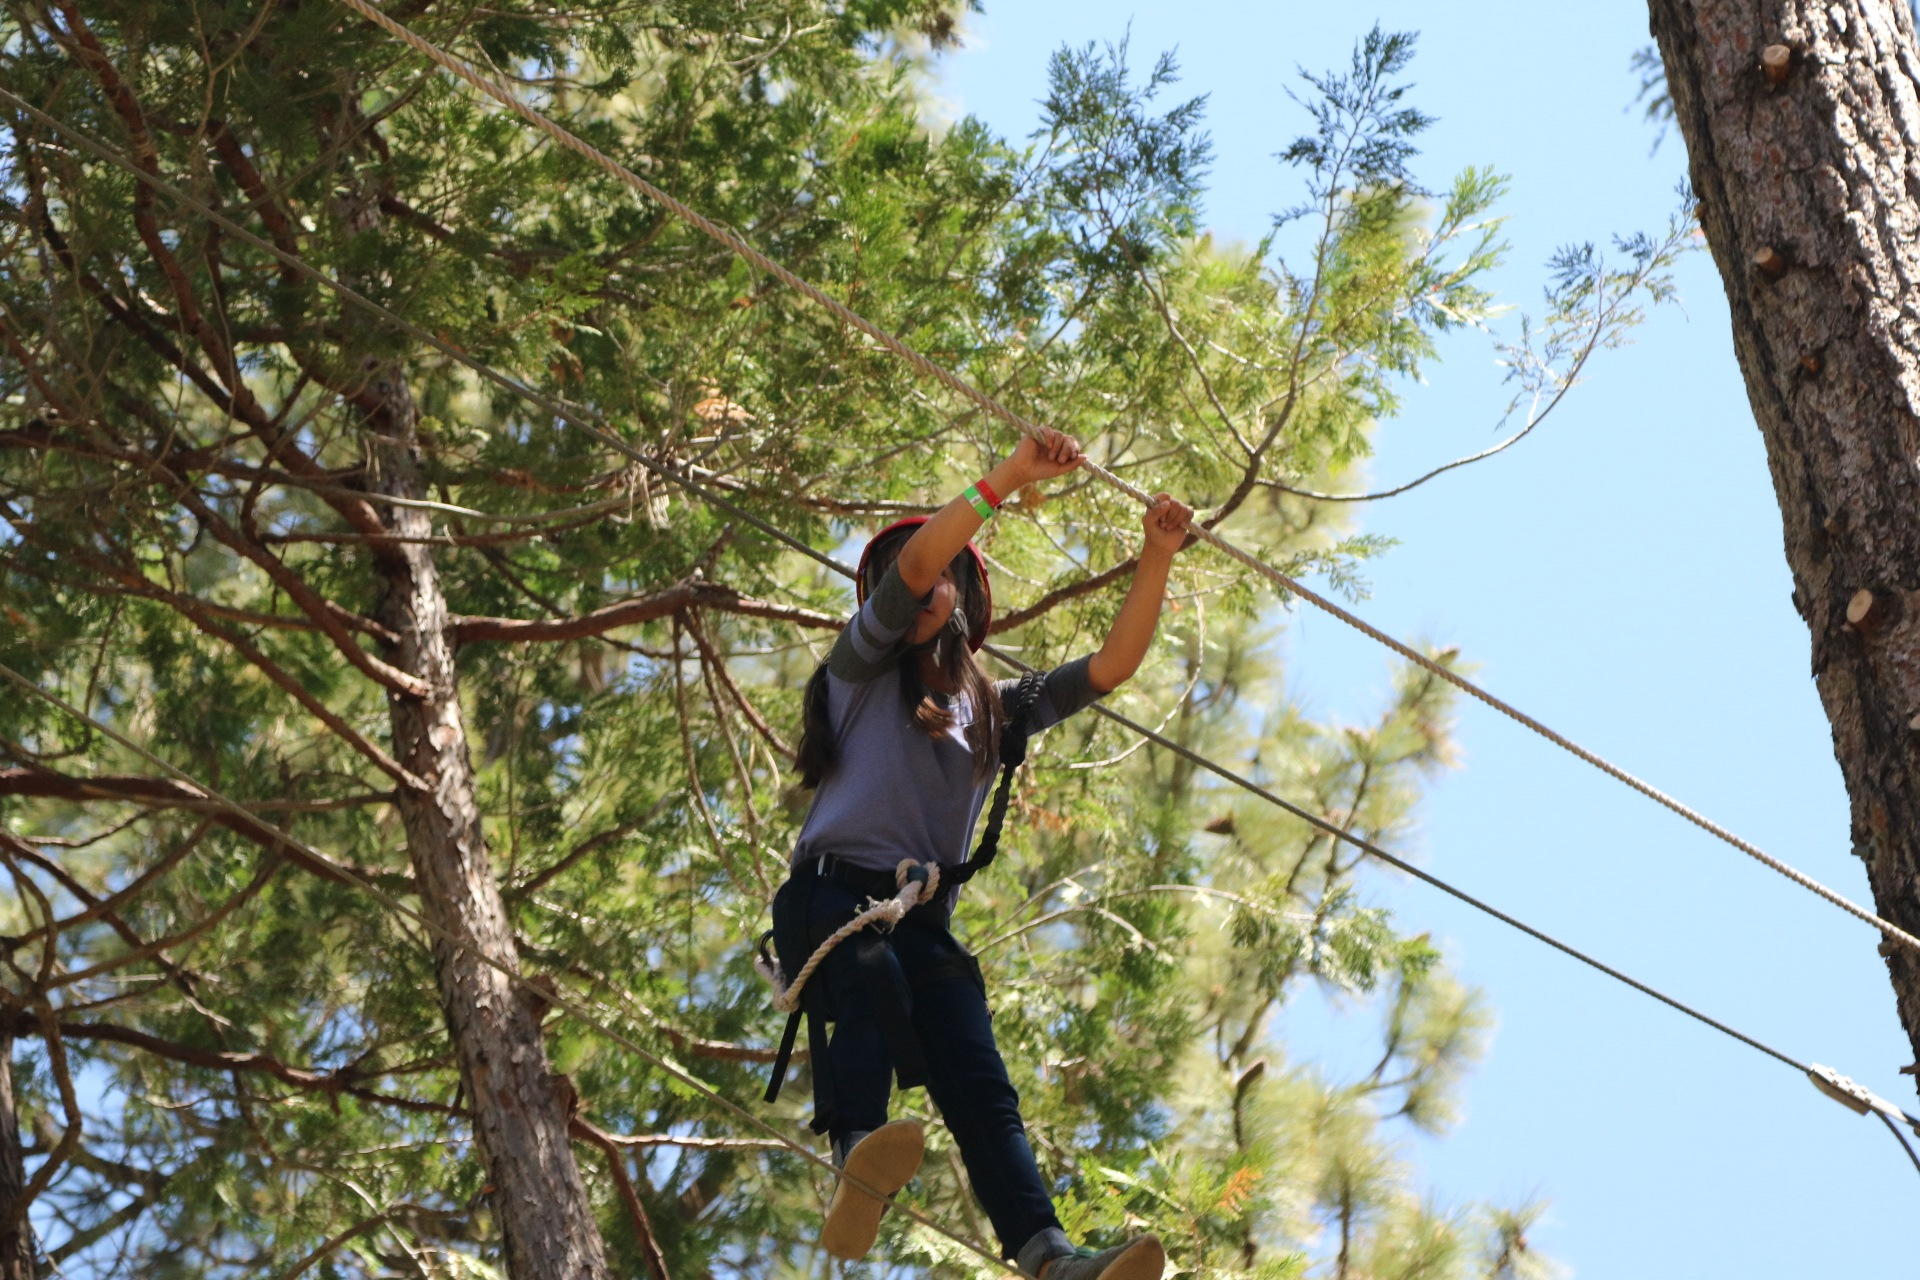 High Adventure Ropes course by Ted Fletcher